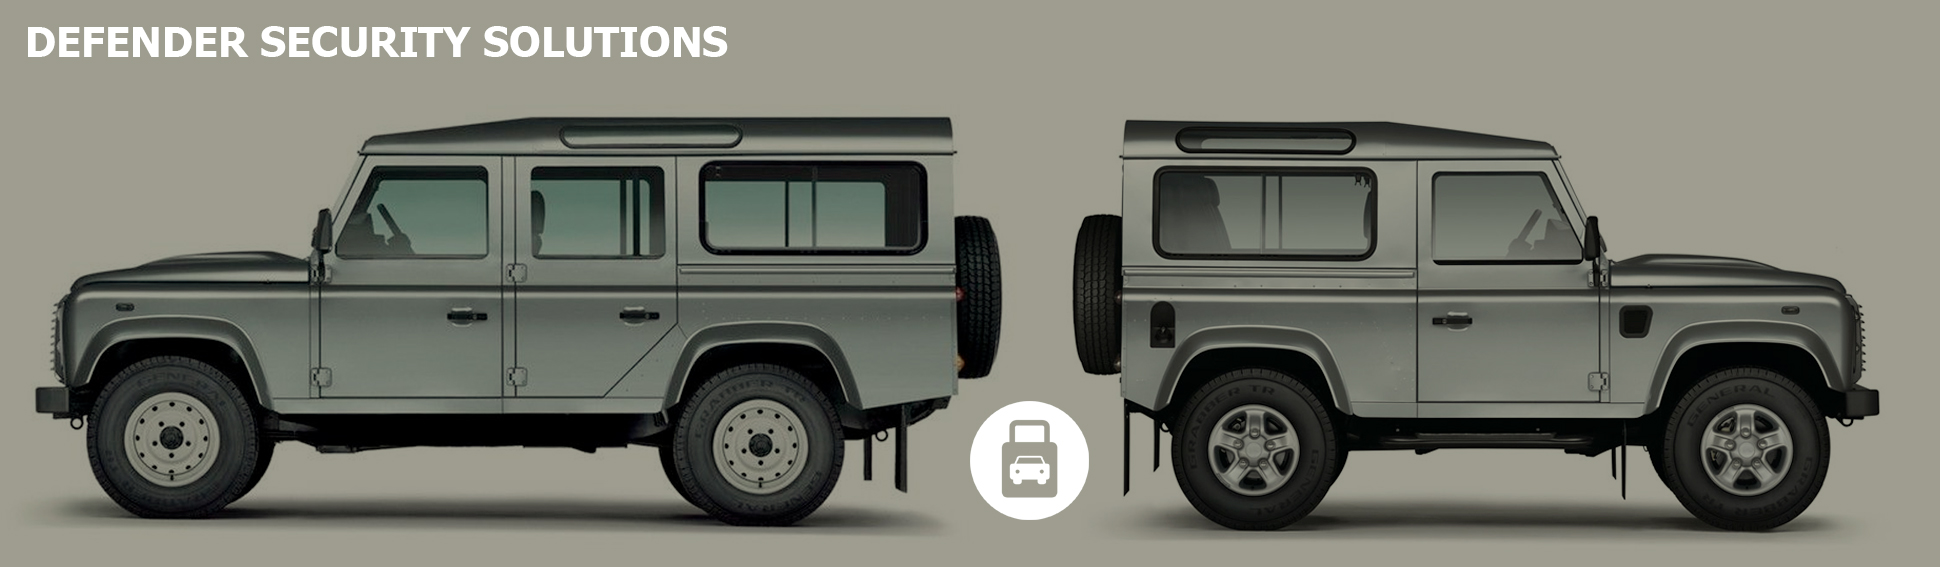 Land Rover Defender Security Solutions - TTW Installations